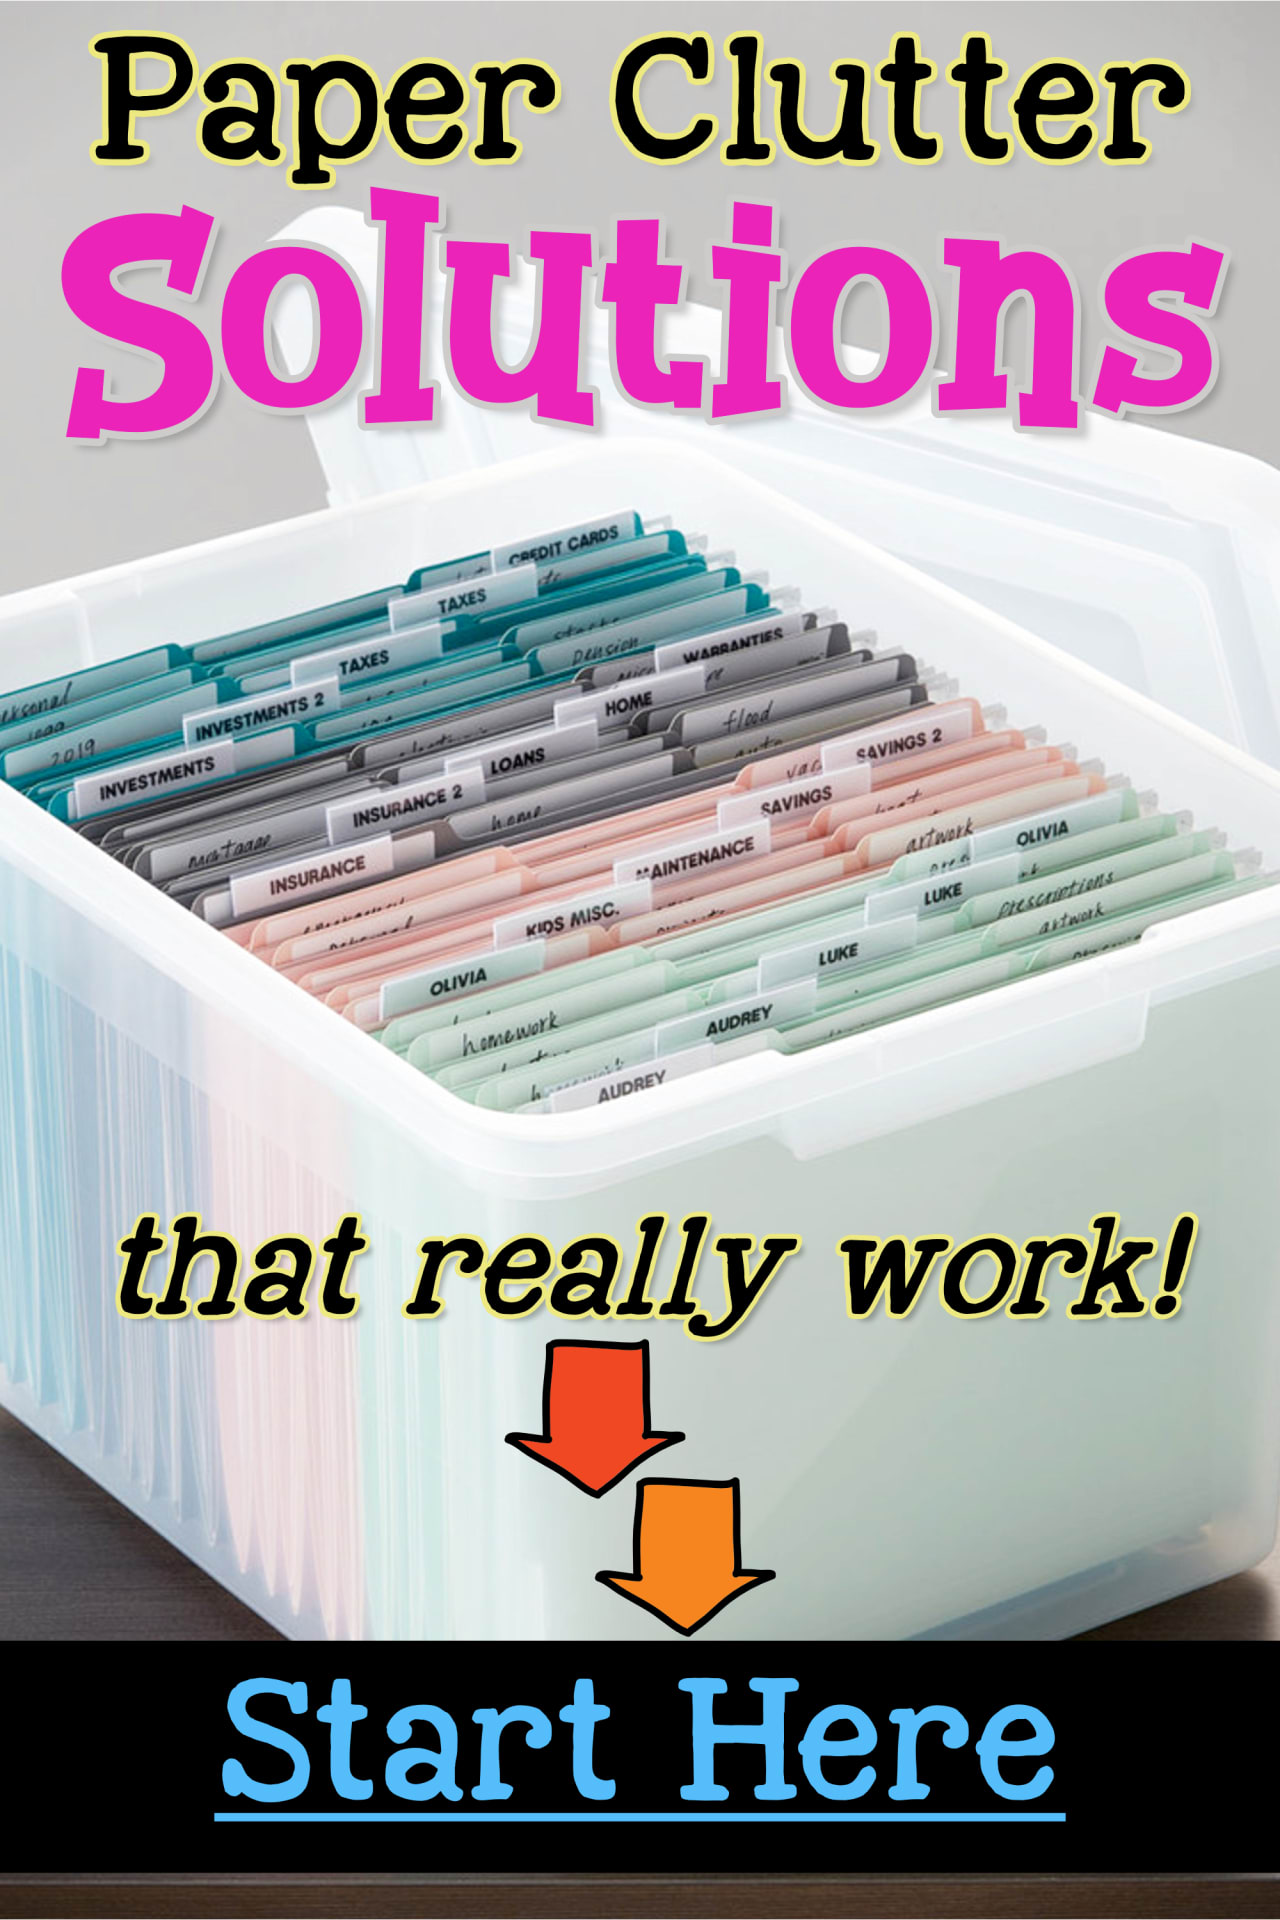 Paper Clutter SOLUTIONS!  Uncluttering your home and don't know how to eliminate paper clutter in your house?  Try these simple paper clutter solutions to sort and organize your bills, paperwork, school papers and important documents in your home WITHOUT feeling overwhelmed!